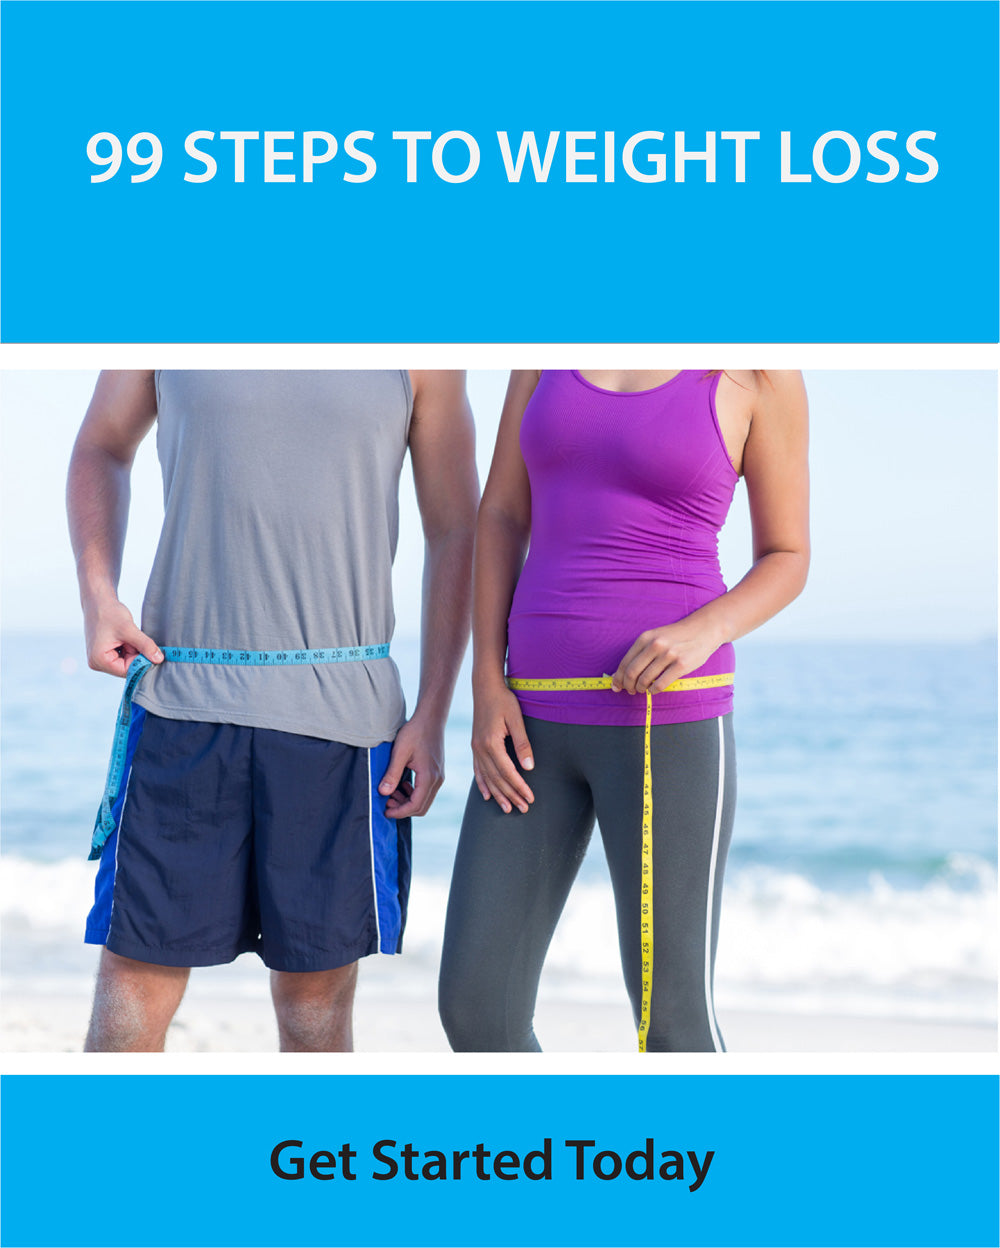 Can you lose weight doing weights